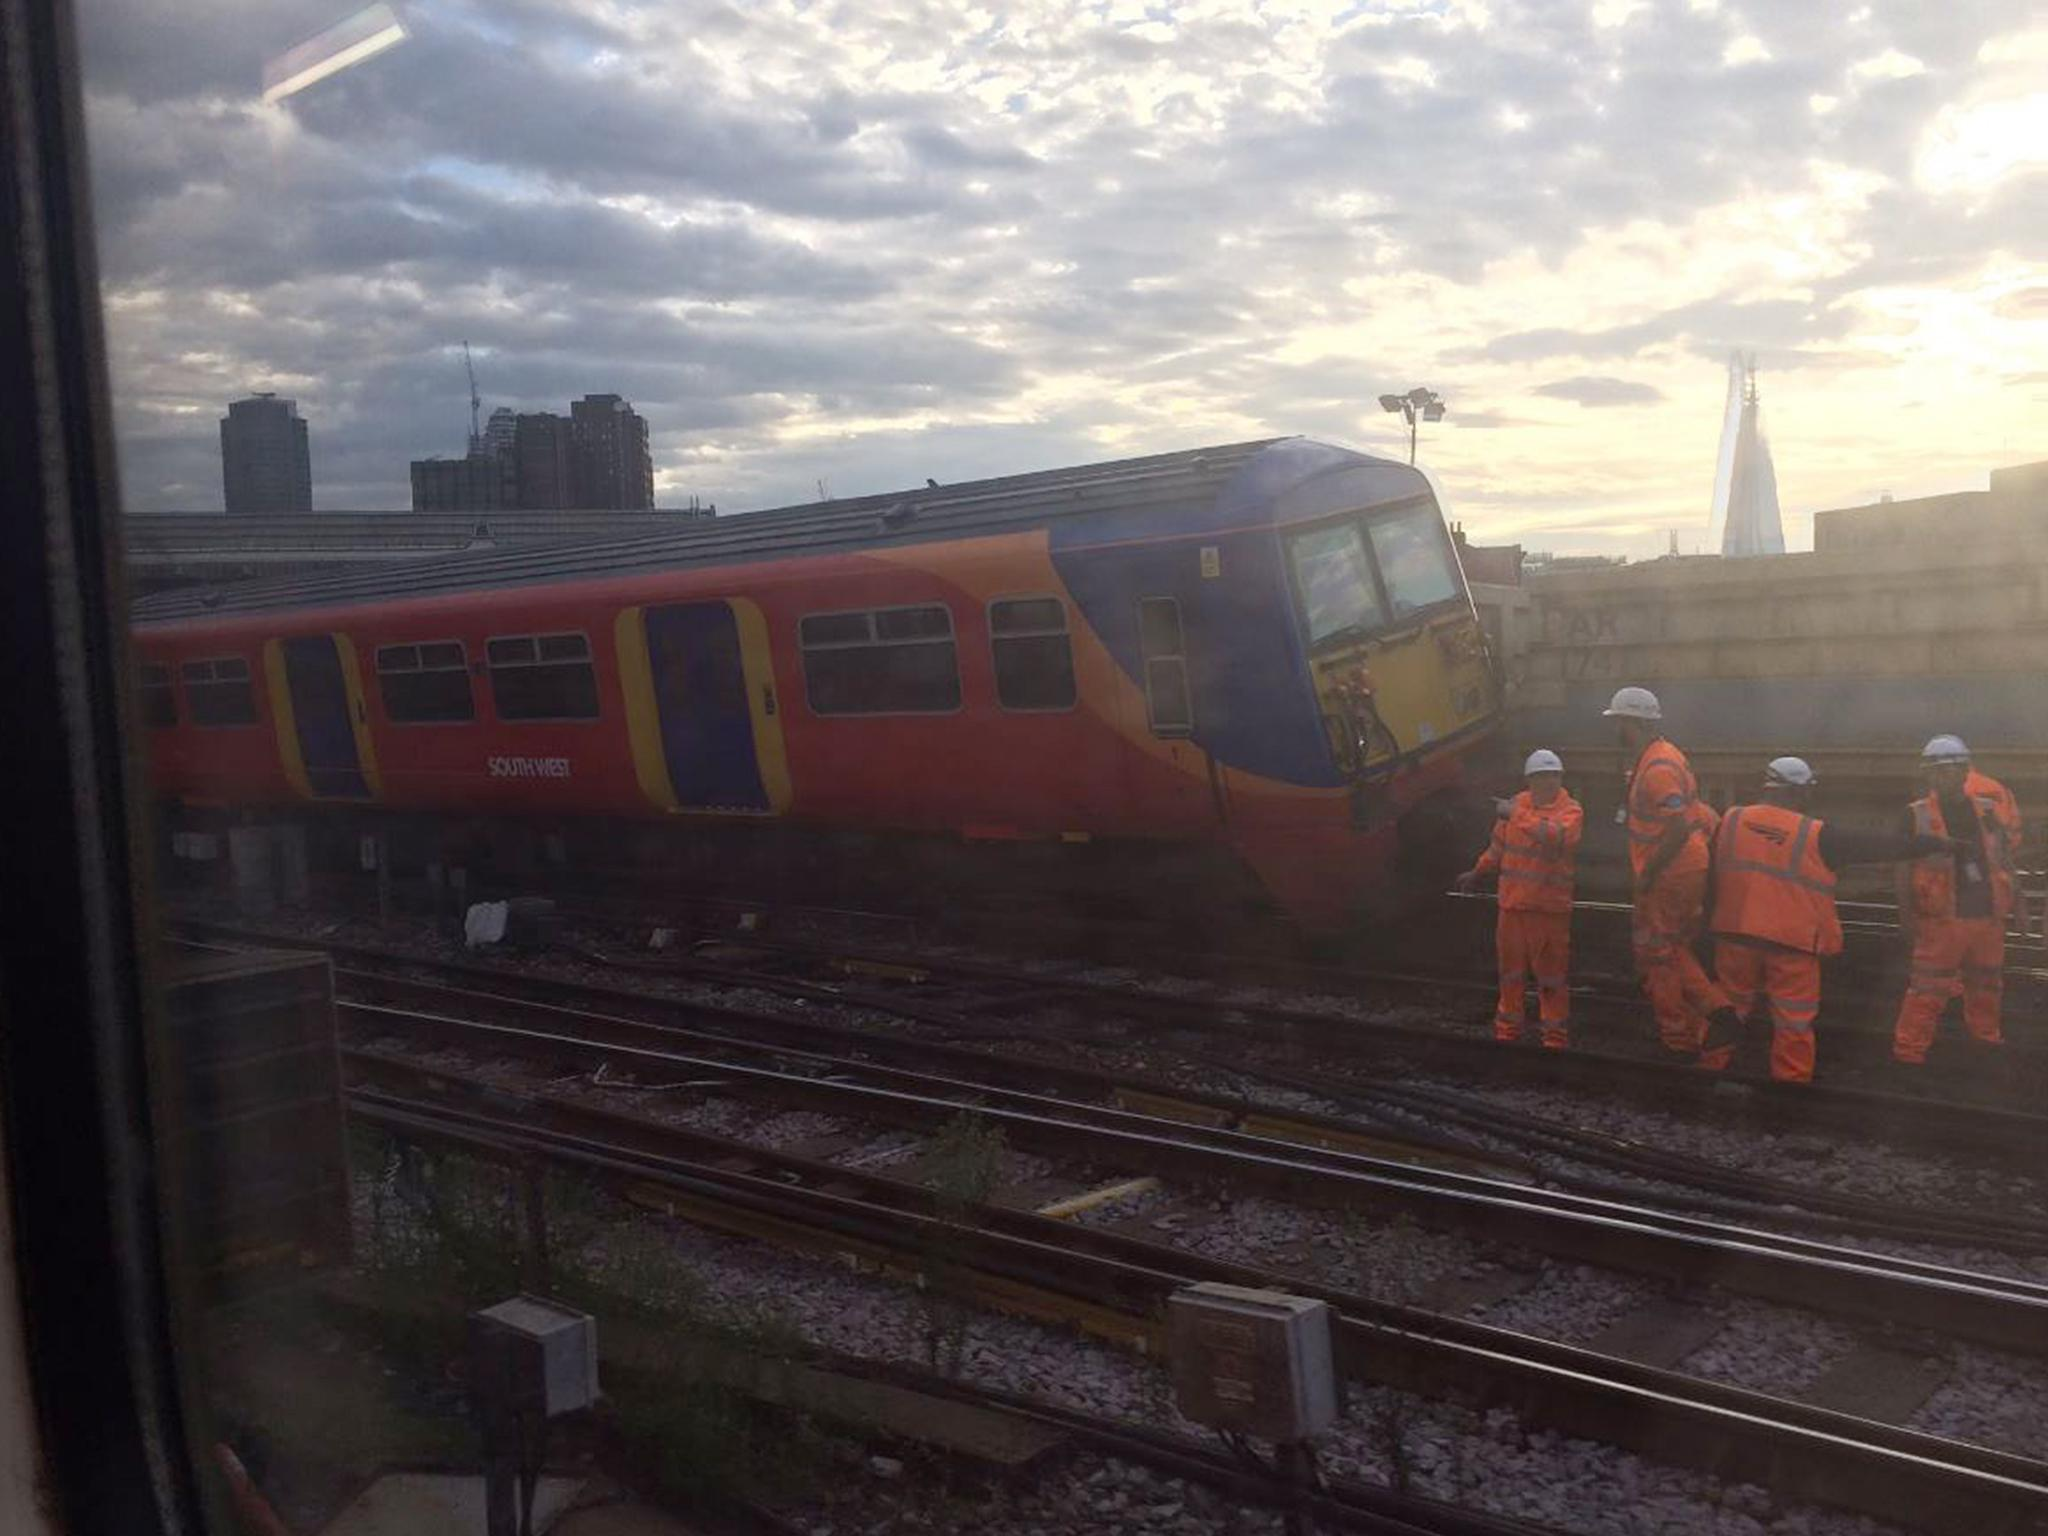 Waterloo train derails in 'operational incident' at London station